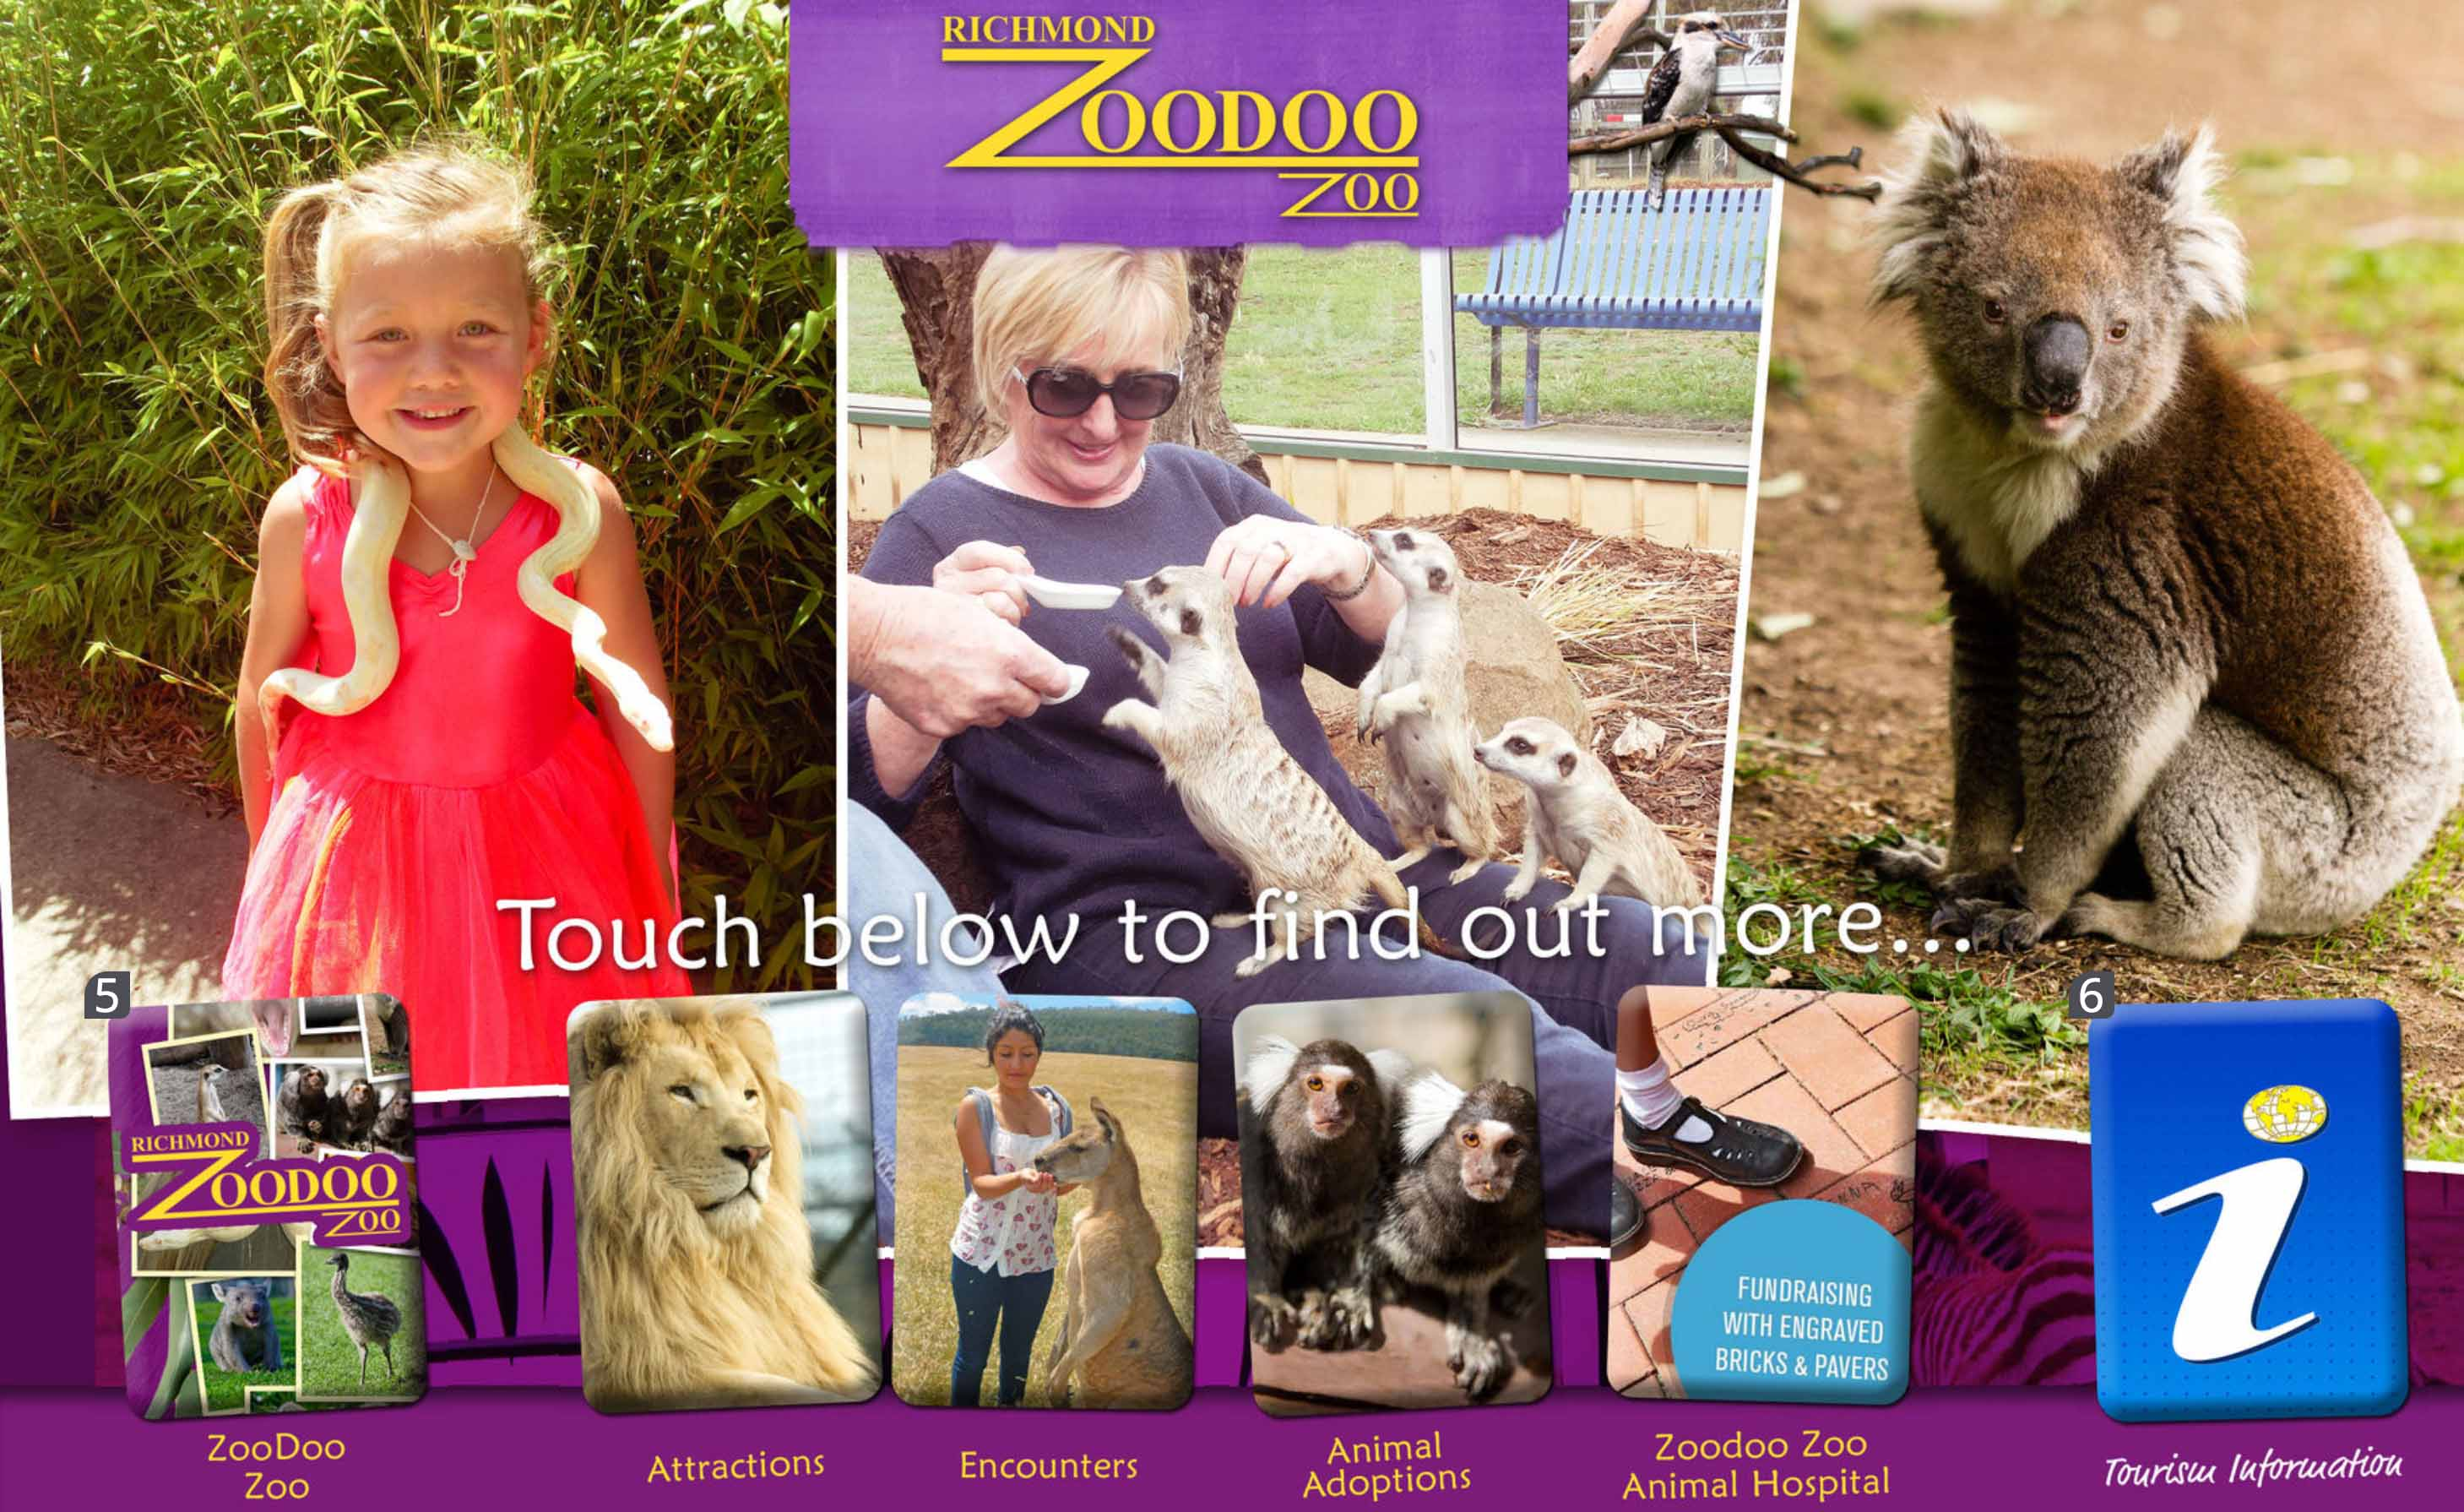 Richmond Zoodoo Zoo